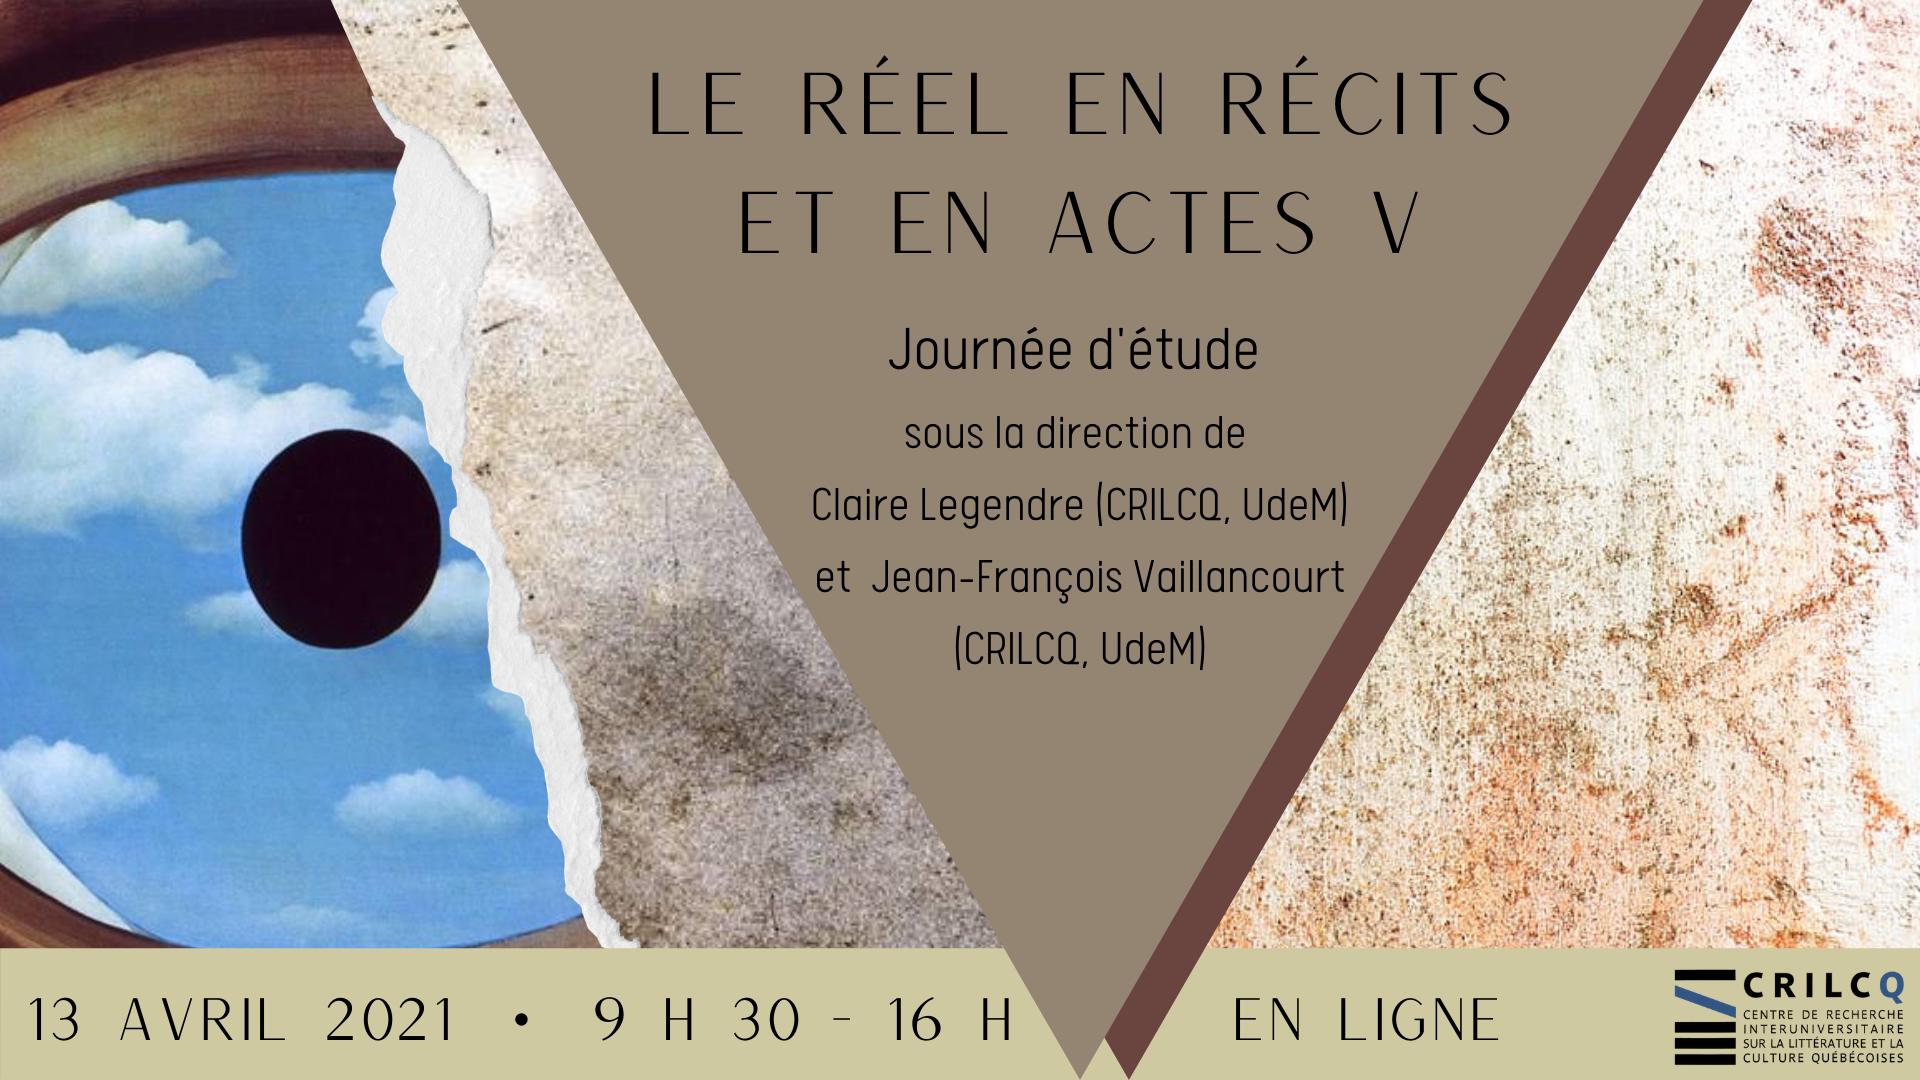 IMAGE-evenement-journee-etude-le-reel-en-recits-et-en-actes-V